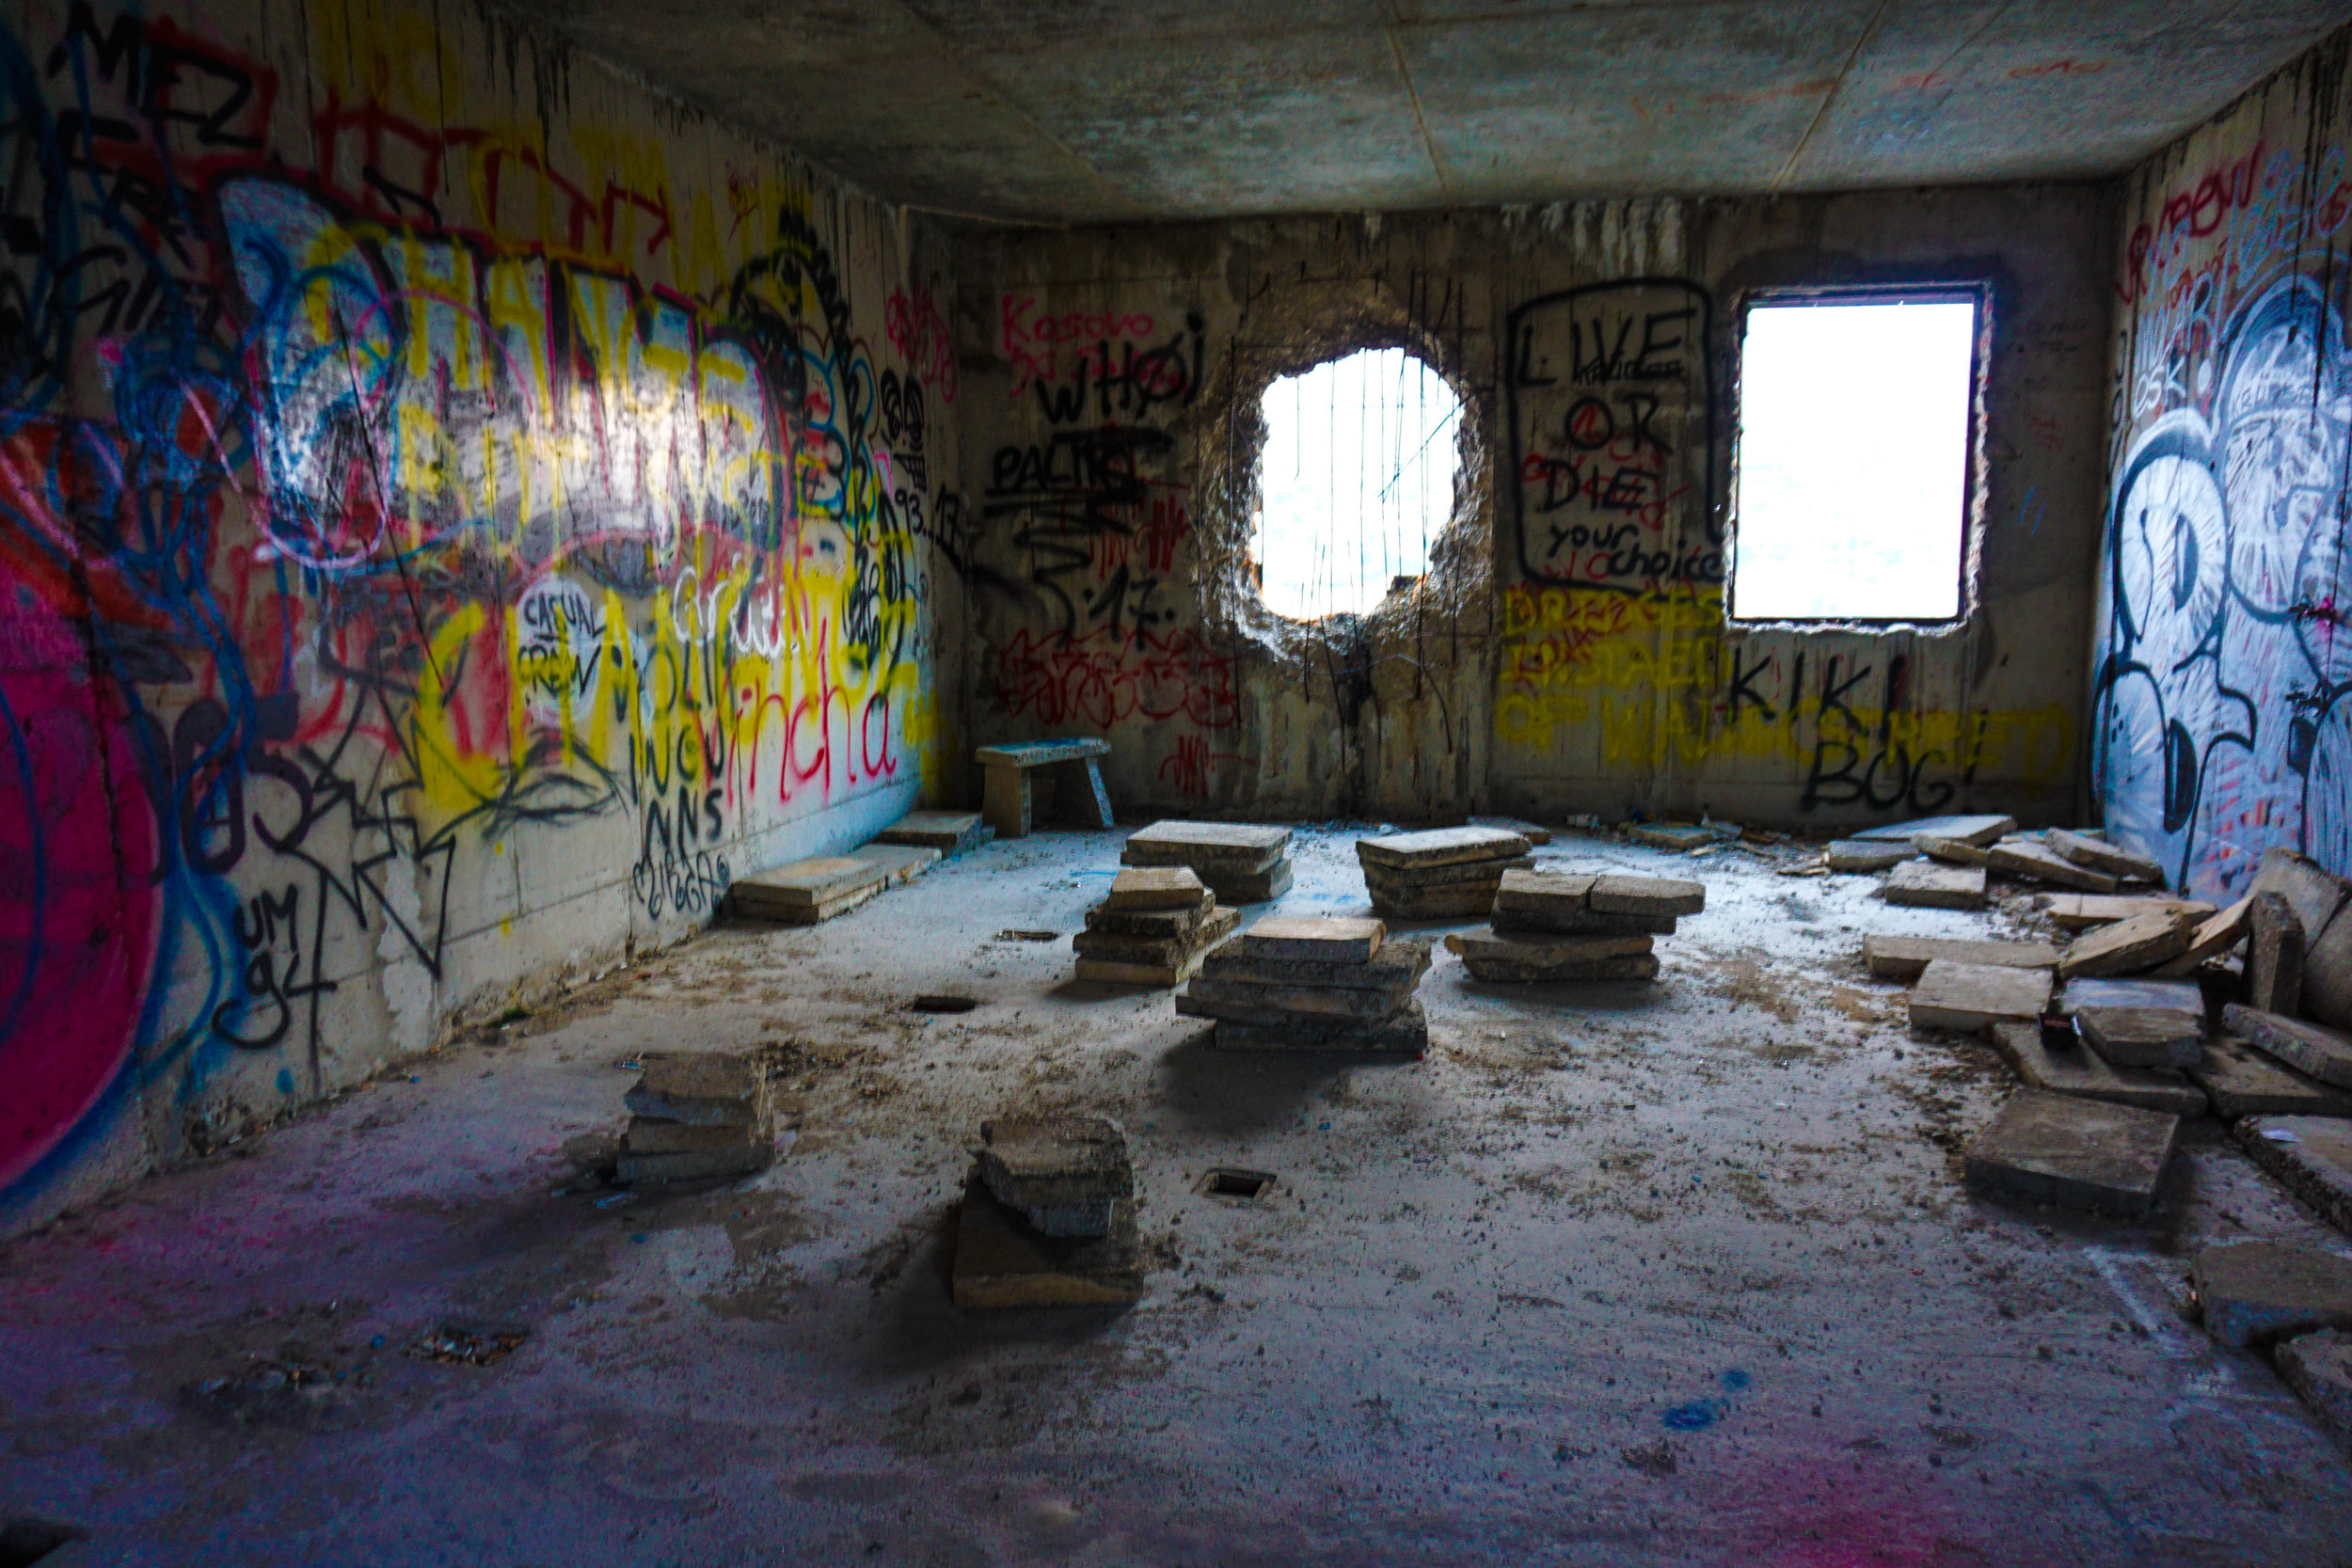 The building goes unmonitored, creating an outlet for younger generations to express themselves through graffiti.